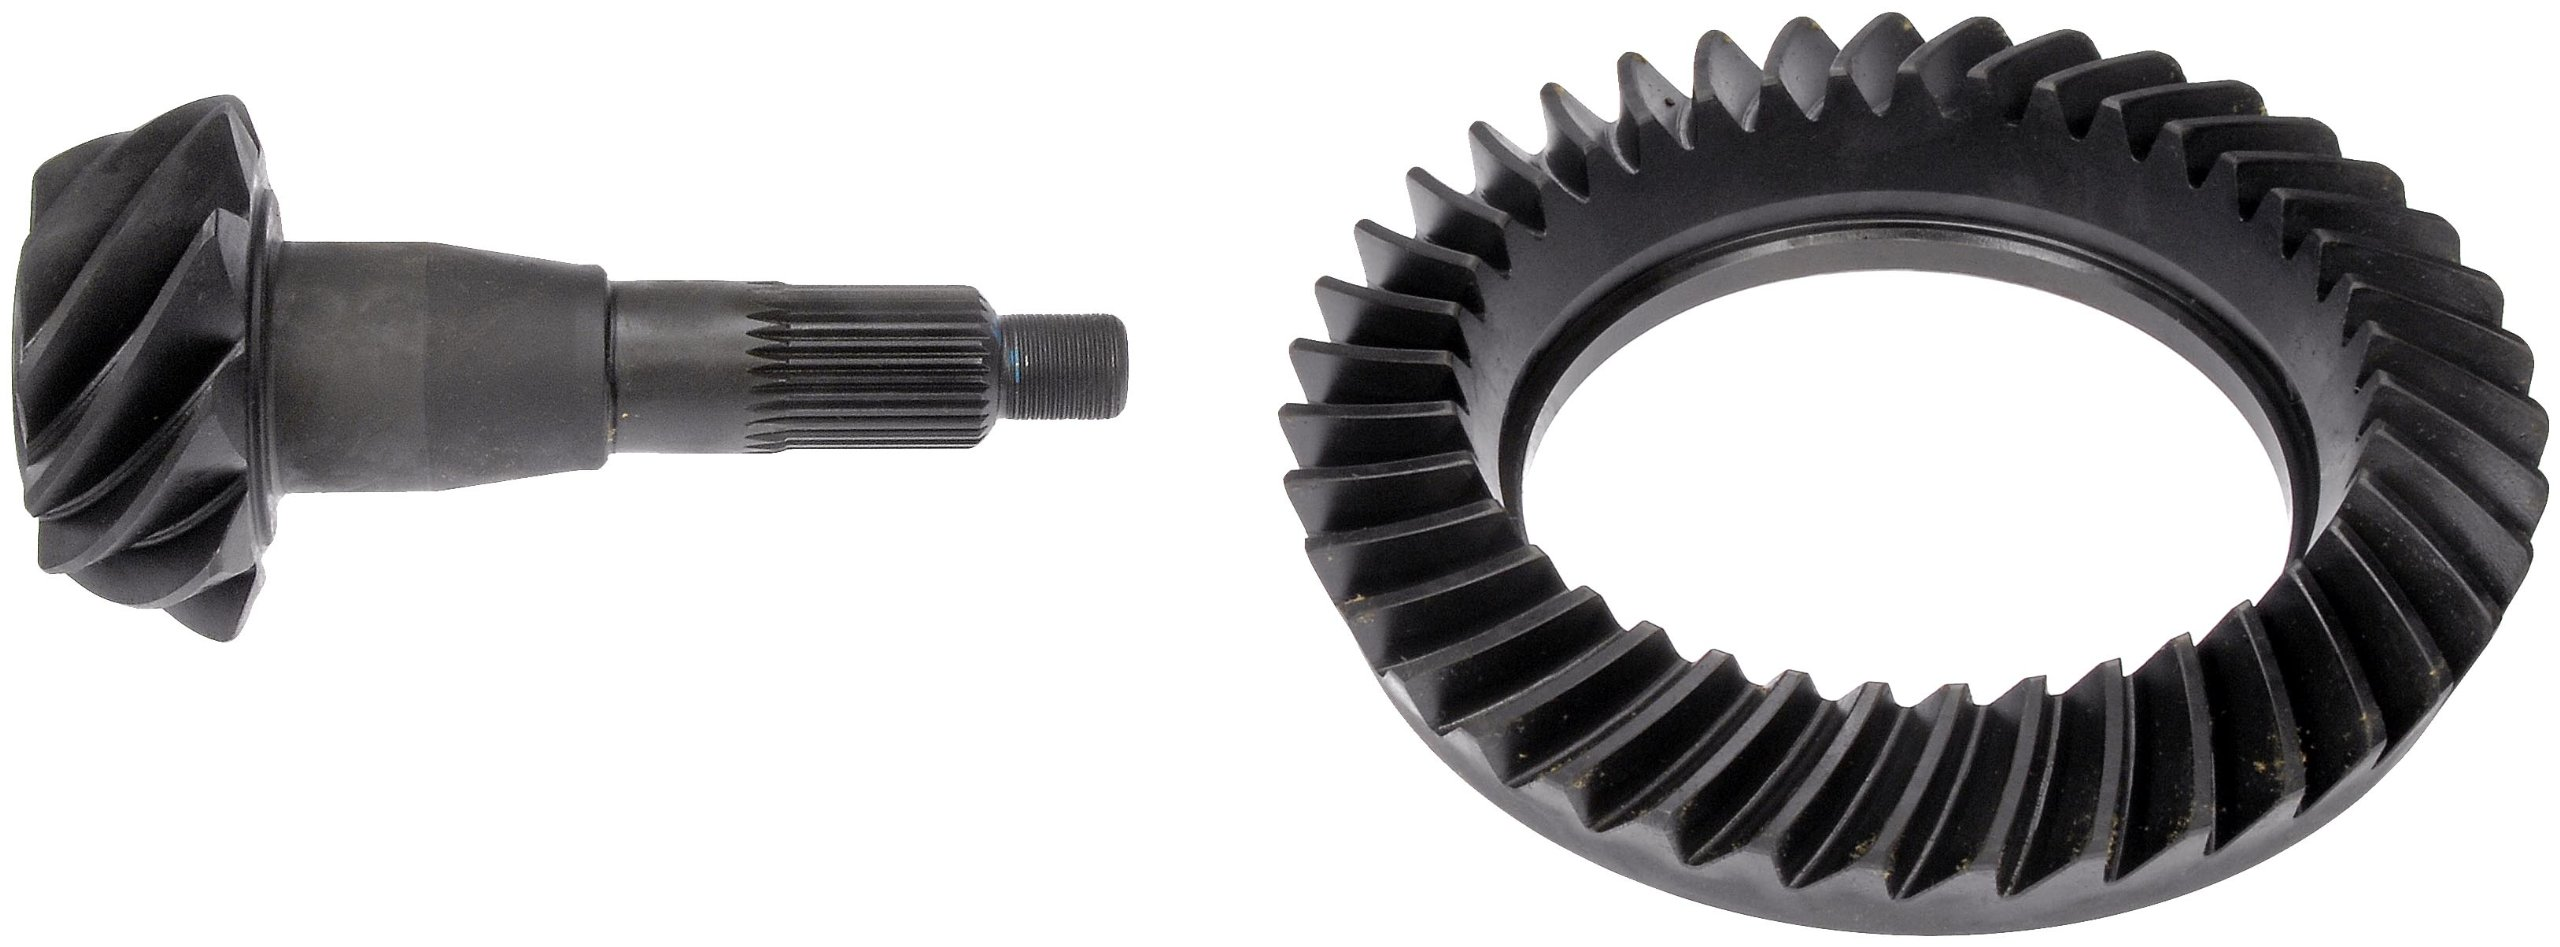 Dorman 697-337 Differential Ring and Pinion